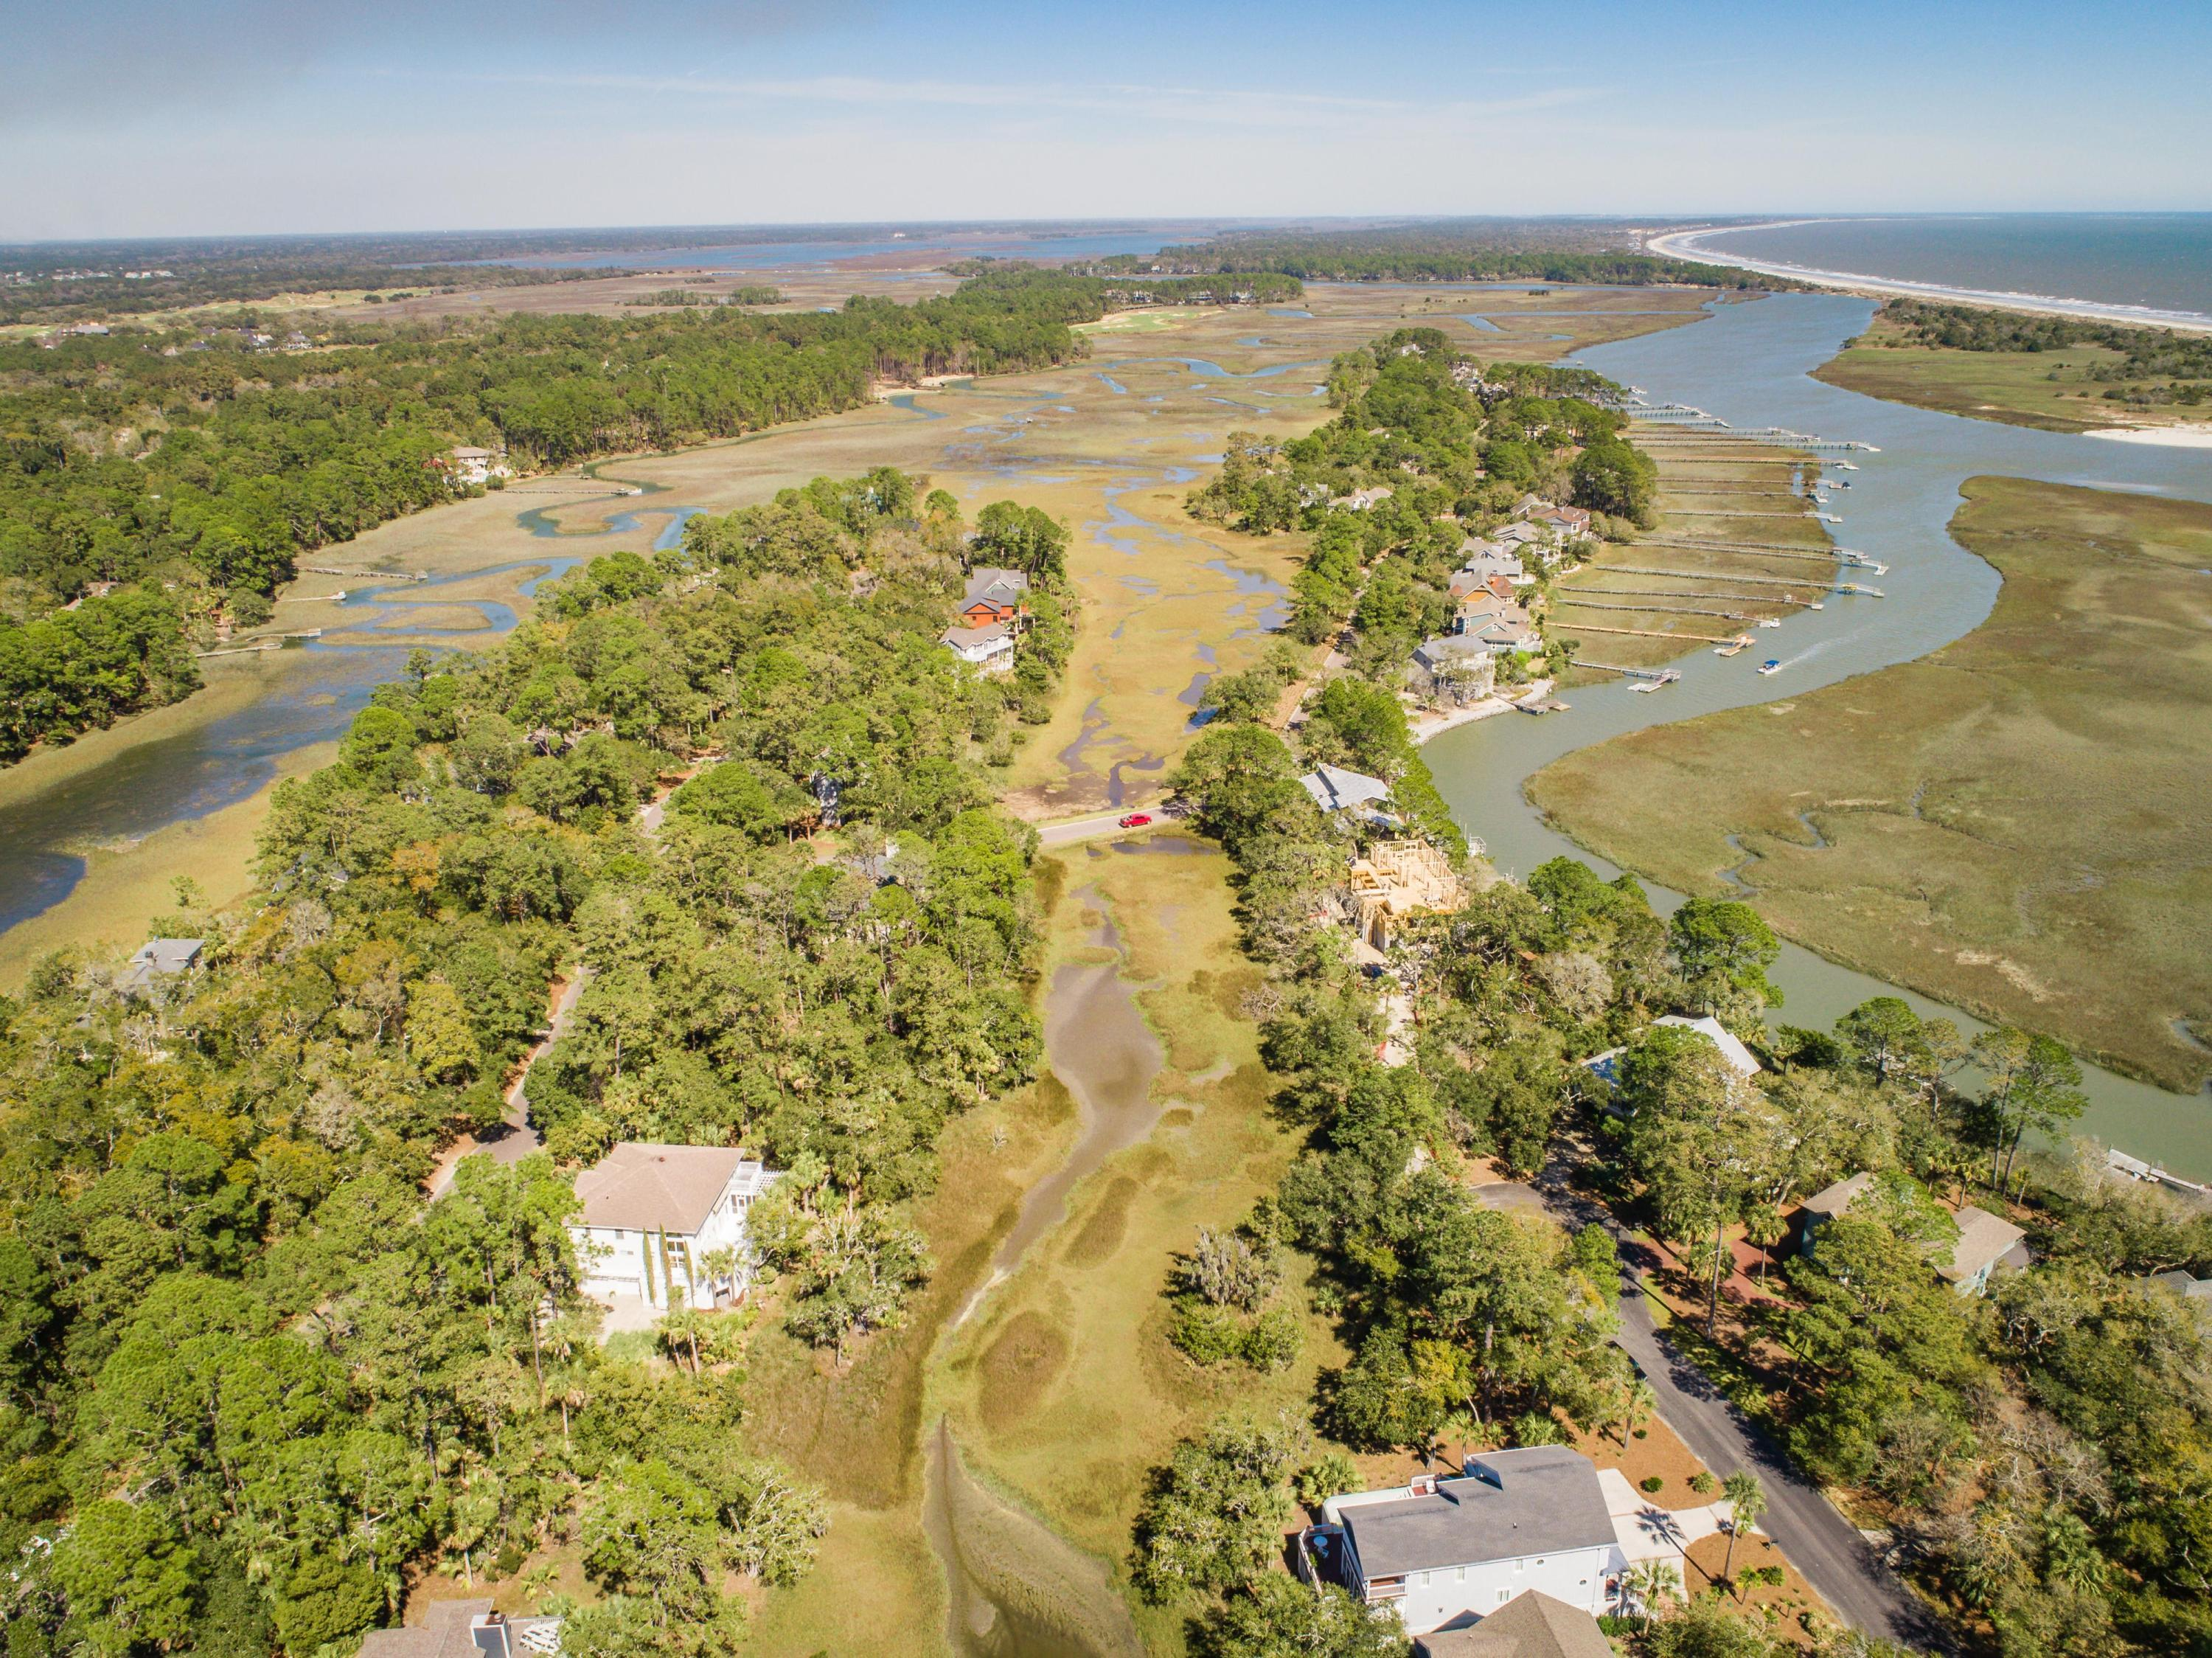 Seabrook Island Homes For Sale - 2957 Deer Point, Seabrook Island, SC - 64